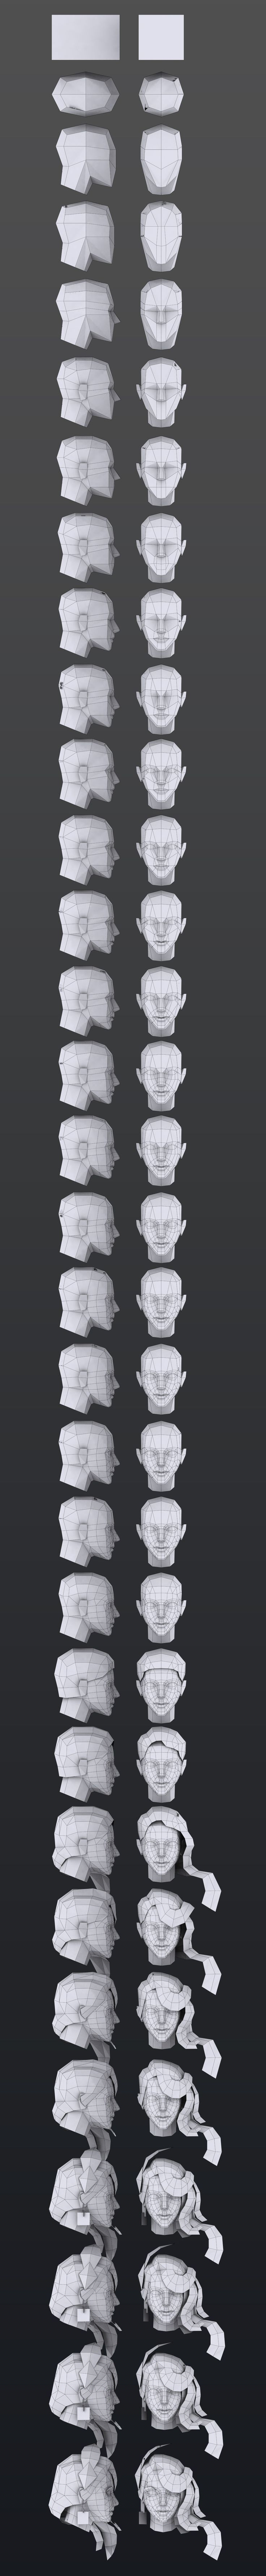 low poly head